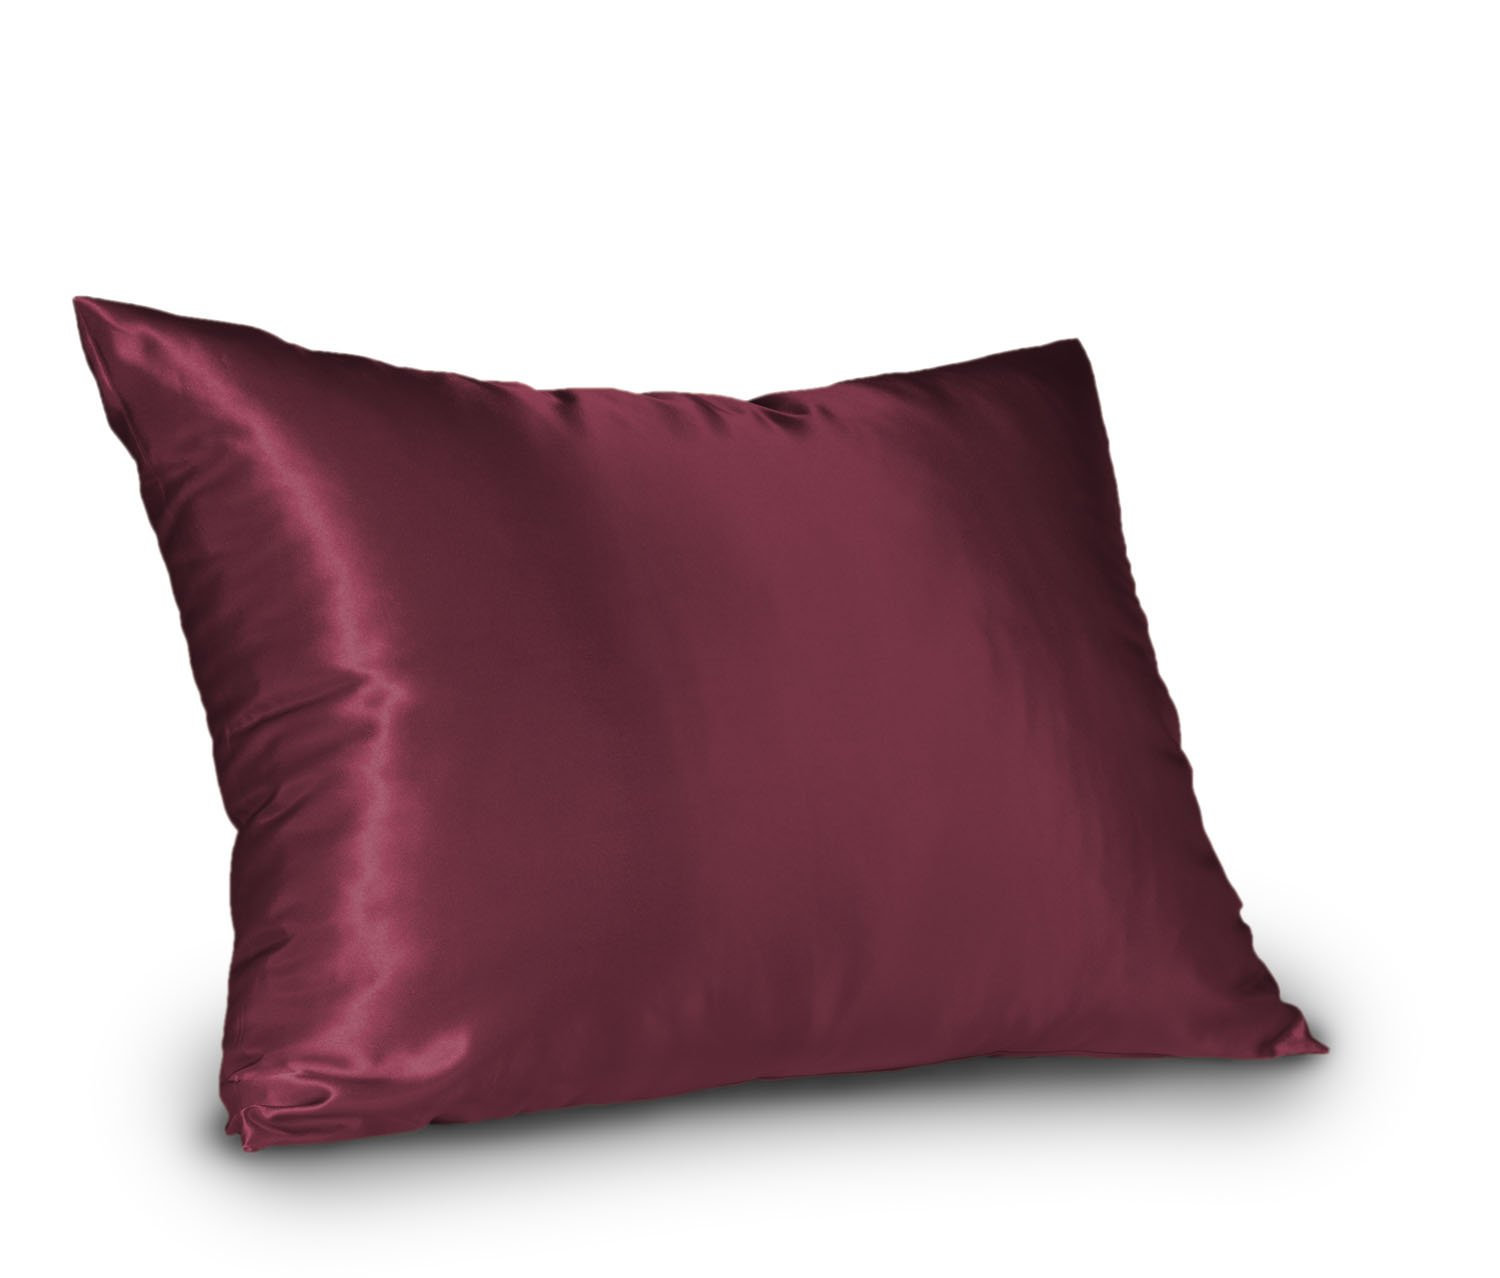 Shop Bedding Sweet Dreams - Blissford Luxury Satin Pillowcase with Zipper, Queen Size, Raspberry (Silky Satin Pillow Case for Hair) By (1-Pack)